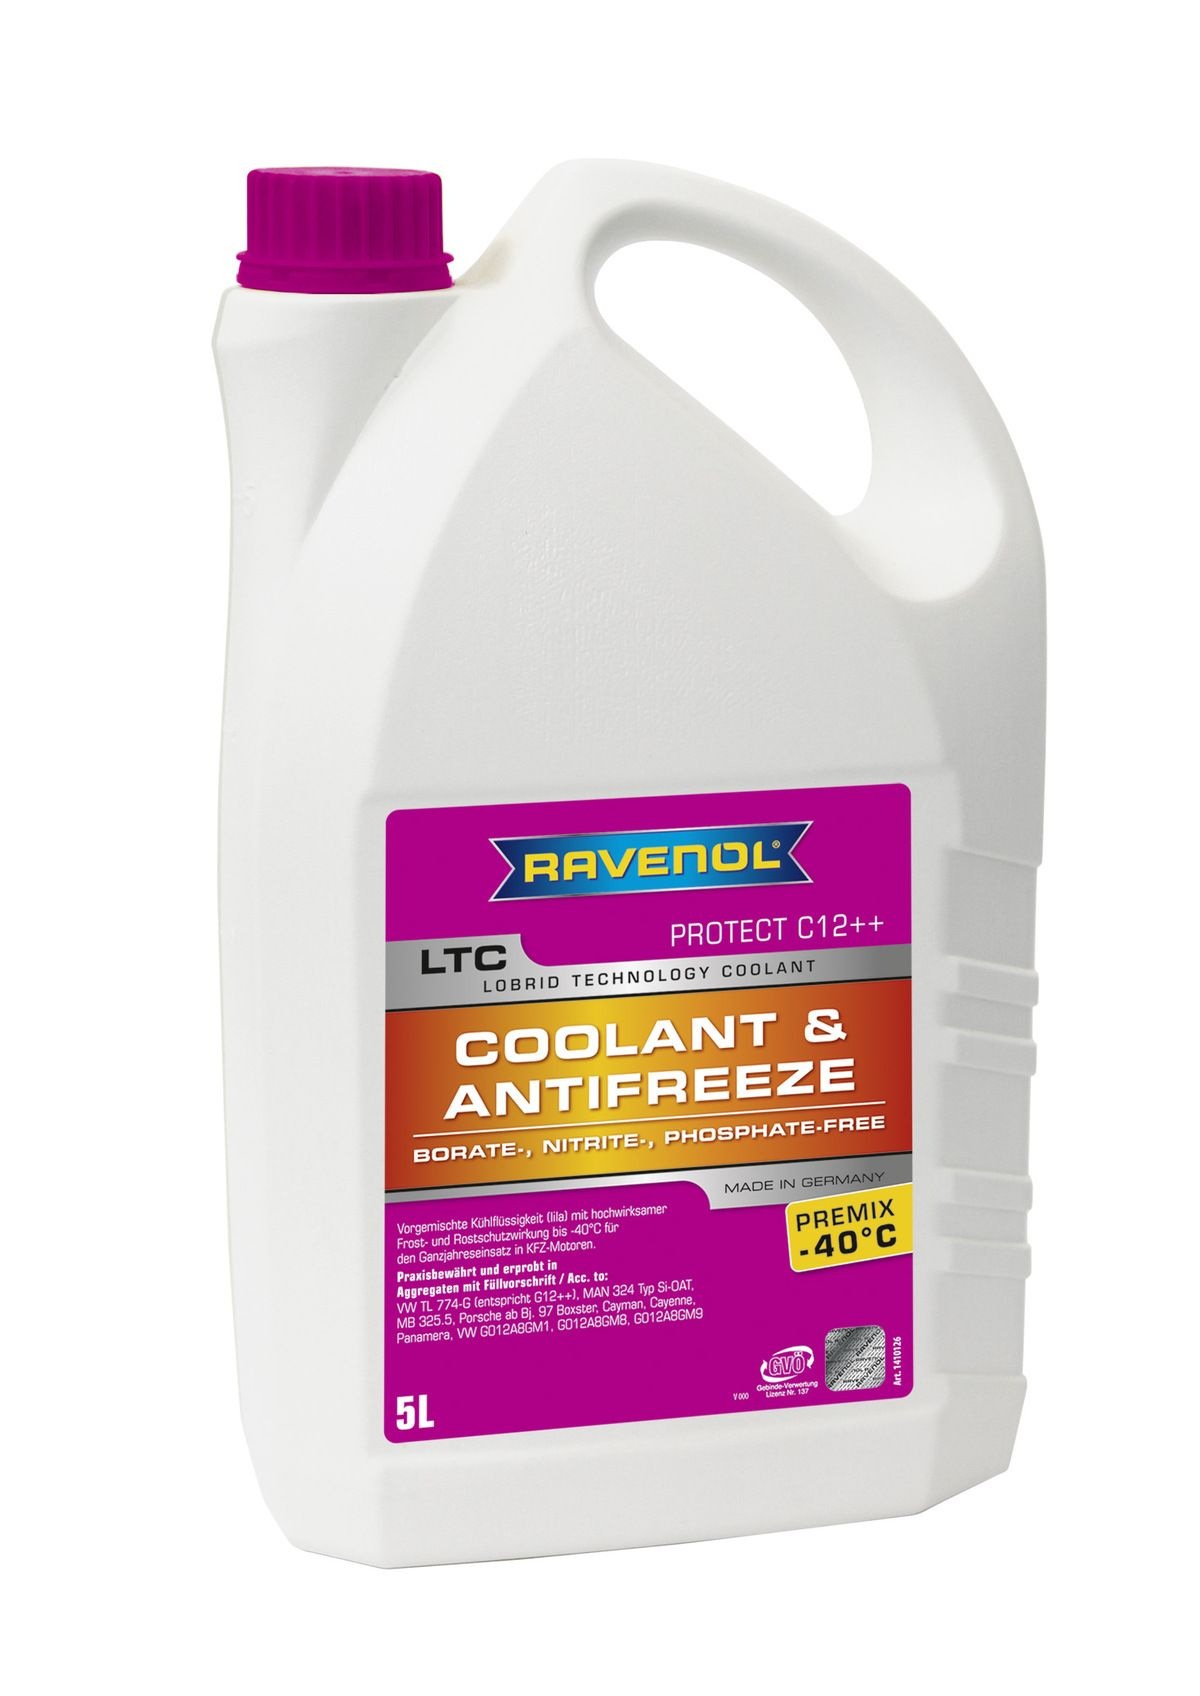 Антифриз Ravenol лиловый LTC Lobrid Technology Coolant Premix -40° C12++ (5 л) от Ravta